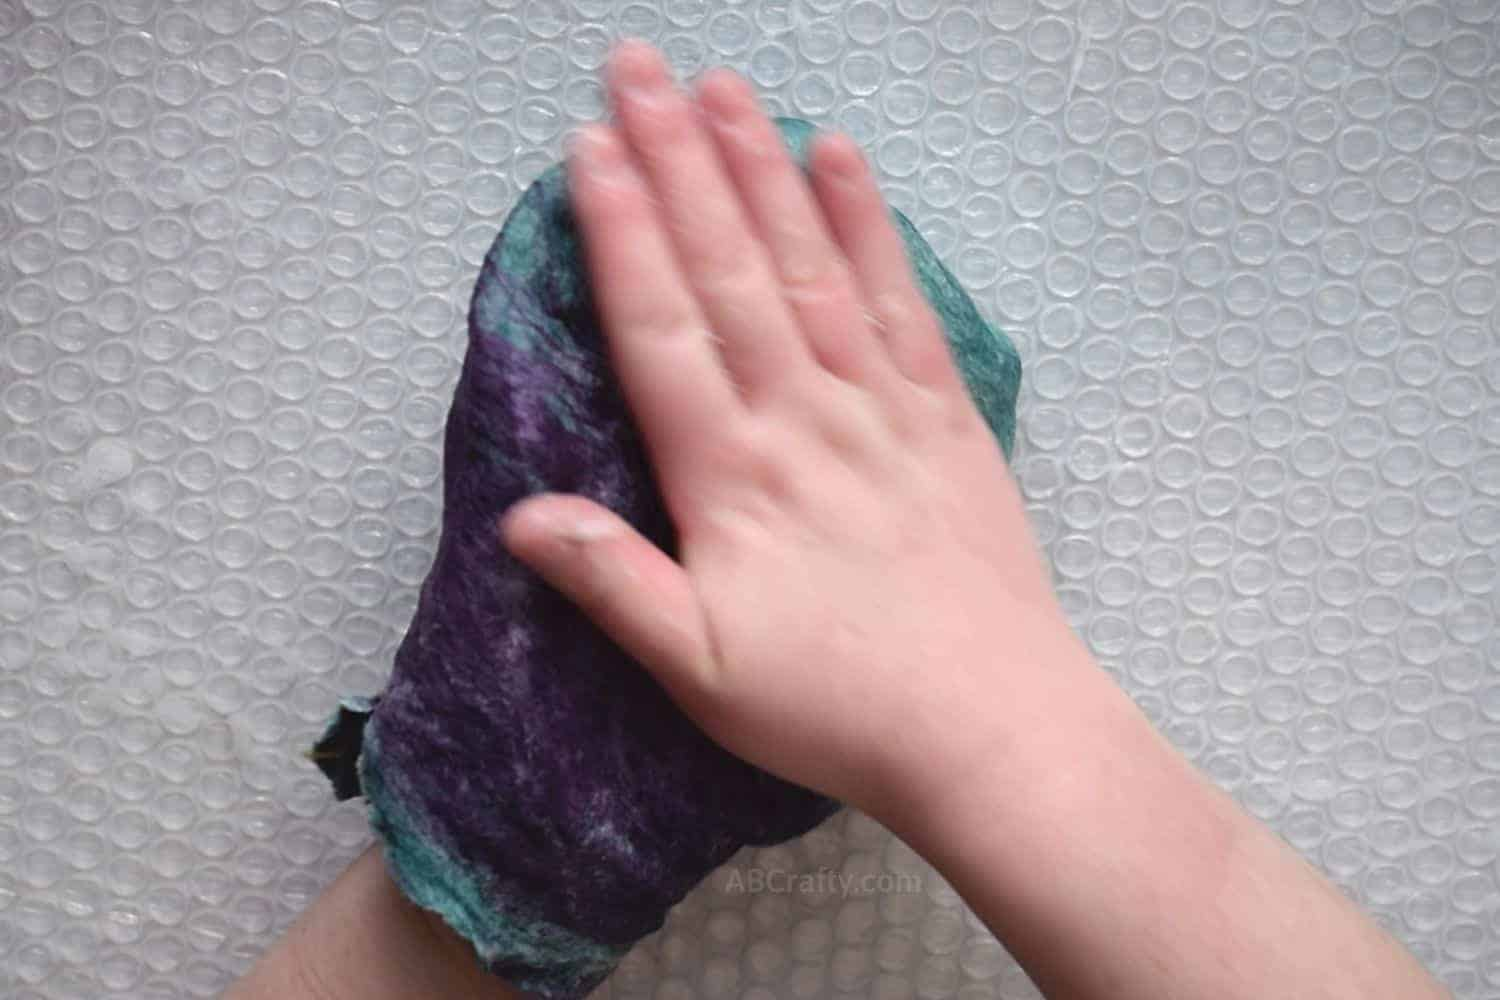 Rubbing the outside of a lightly felted pouch after flipping it inside out